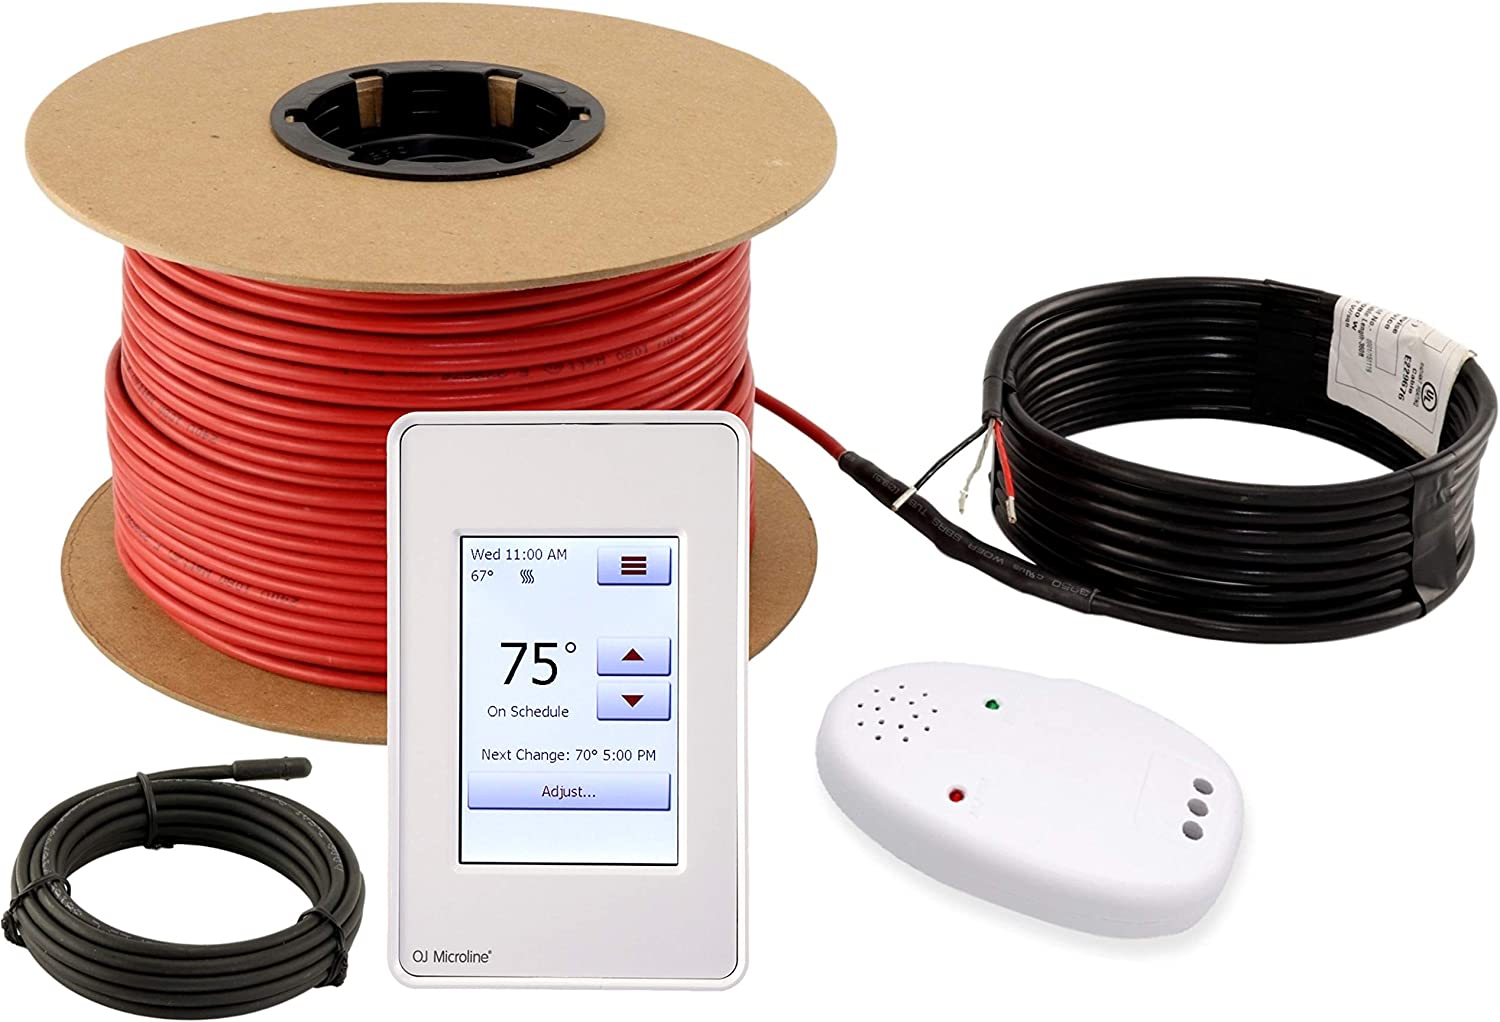 LuxHeat Floor Heating Cable Set, 50 Sqft 120v Electric Radiant Floor Heating System Under Tile, Laminate. Underfloor Heating Kit Includes Cable, Alarm, OJ Microline Programmable Thermostat with GFCI